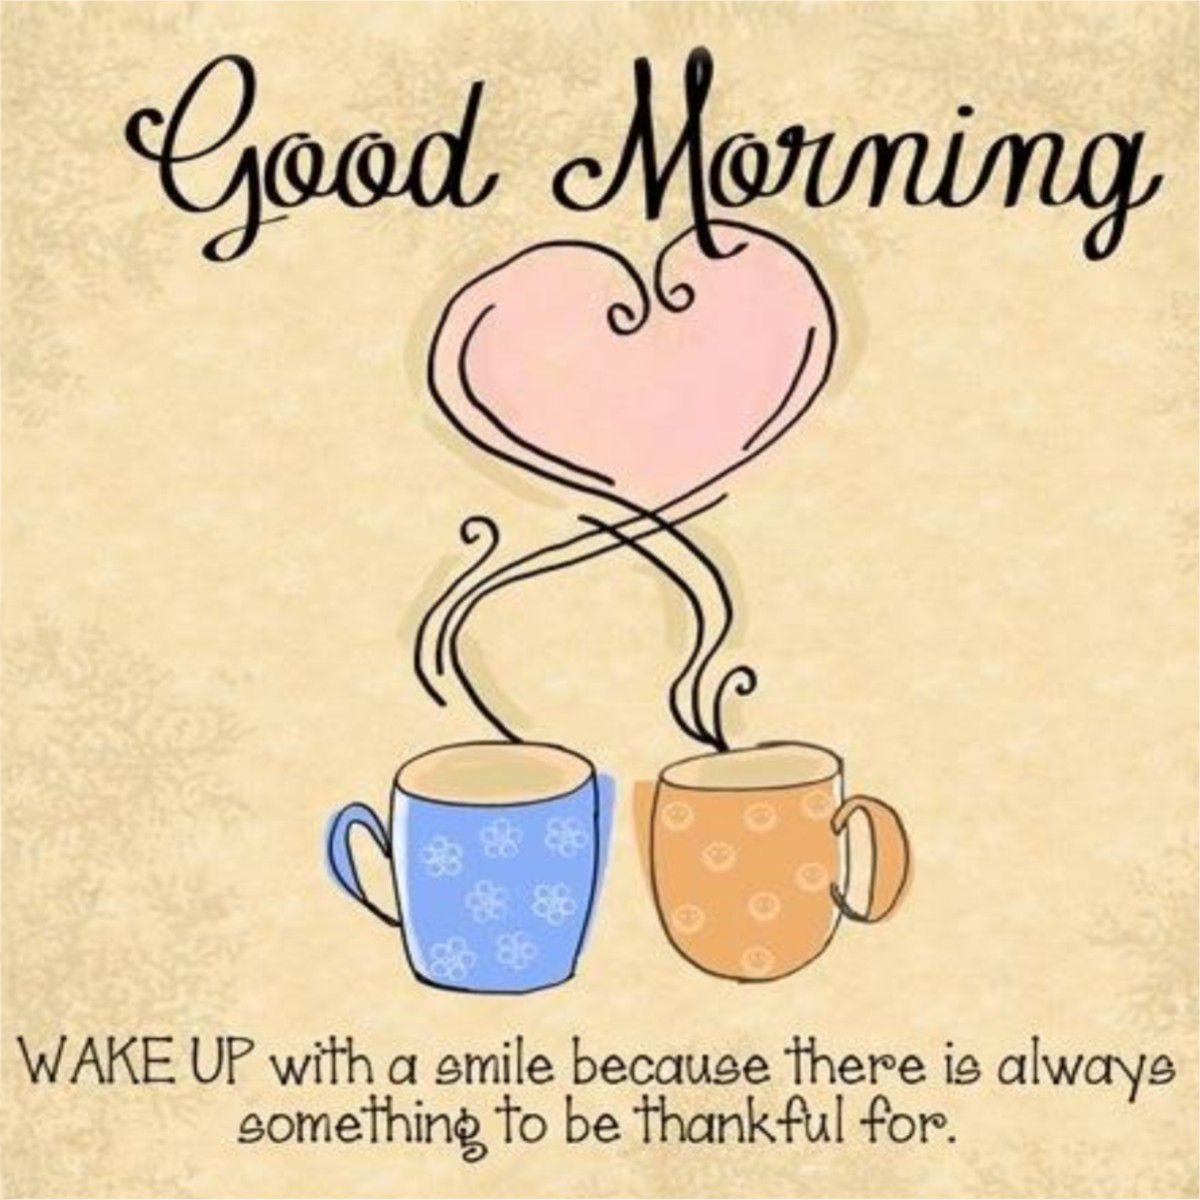 Good Morning Let S Start Our Day With A Smile Uplift Inspire Inspiration Mindset Motivate Thankful Thursday Morning Blessings Good Morning Wishes